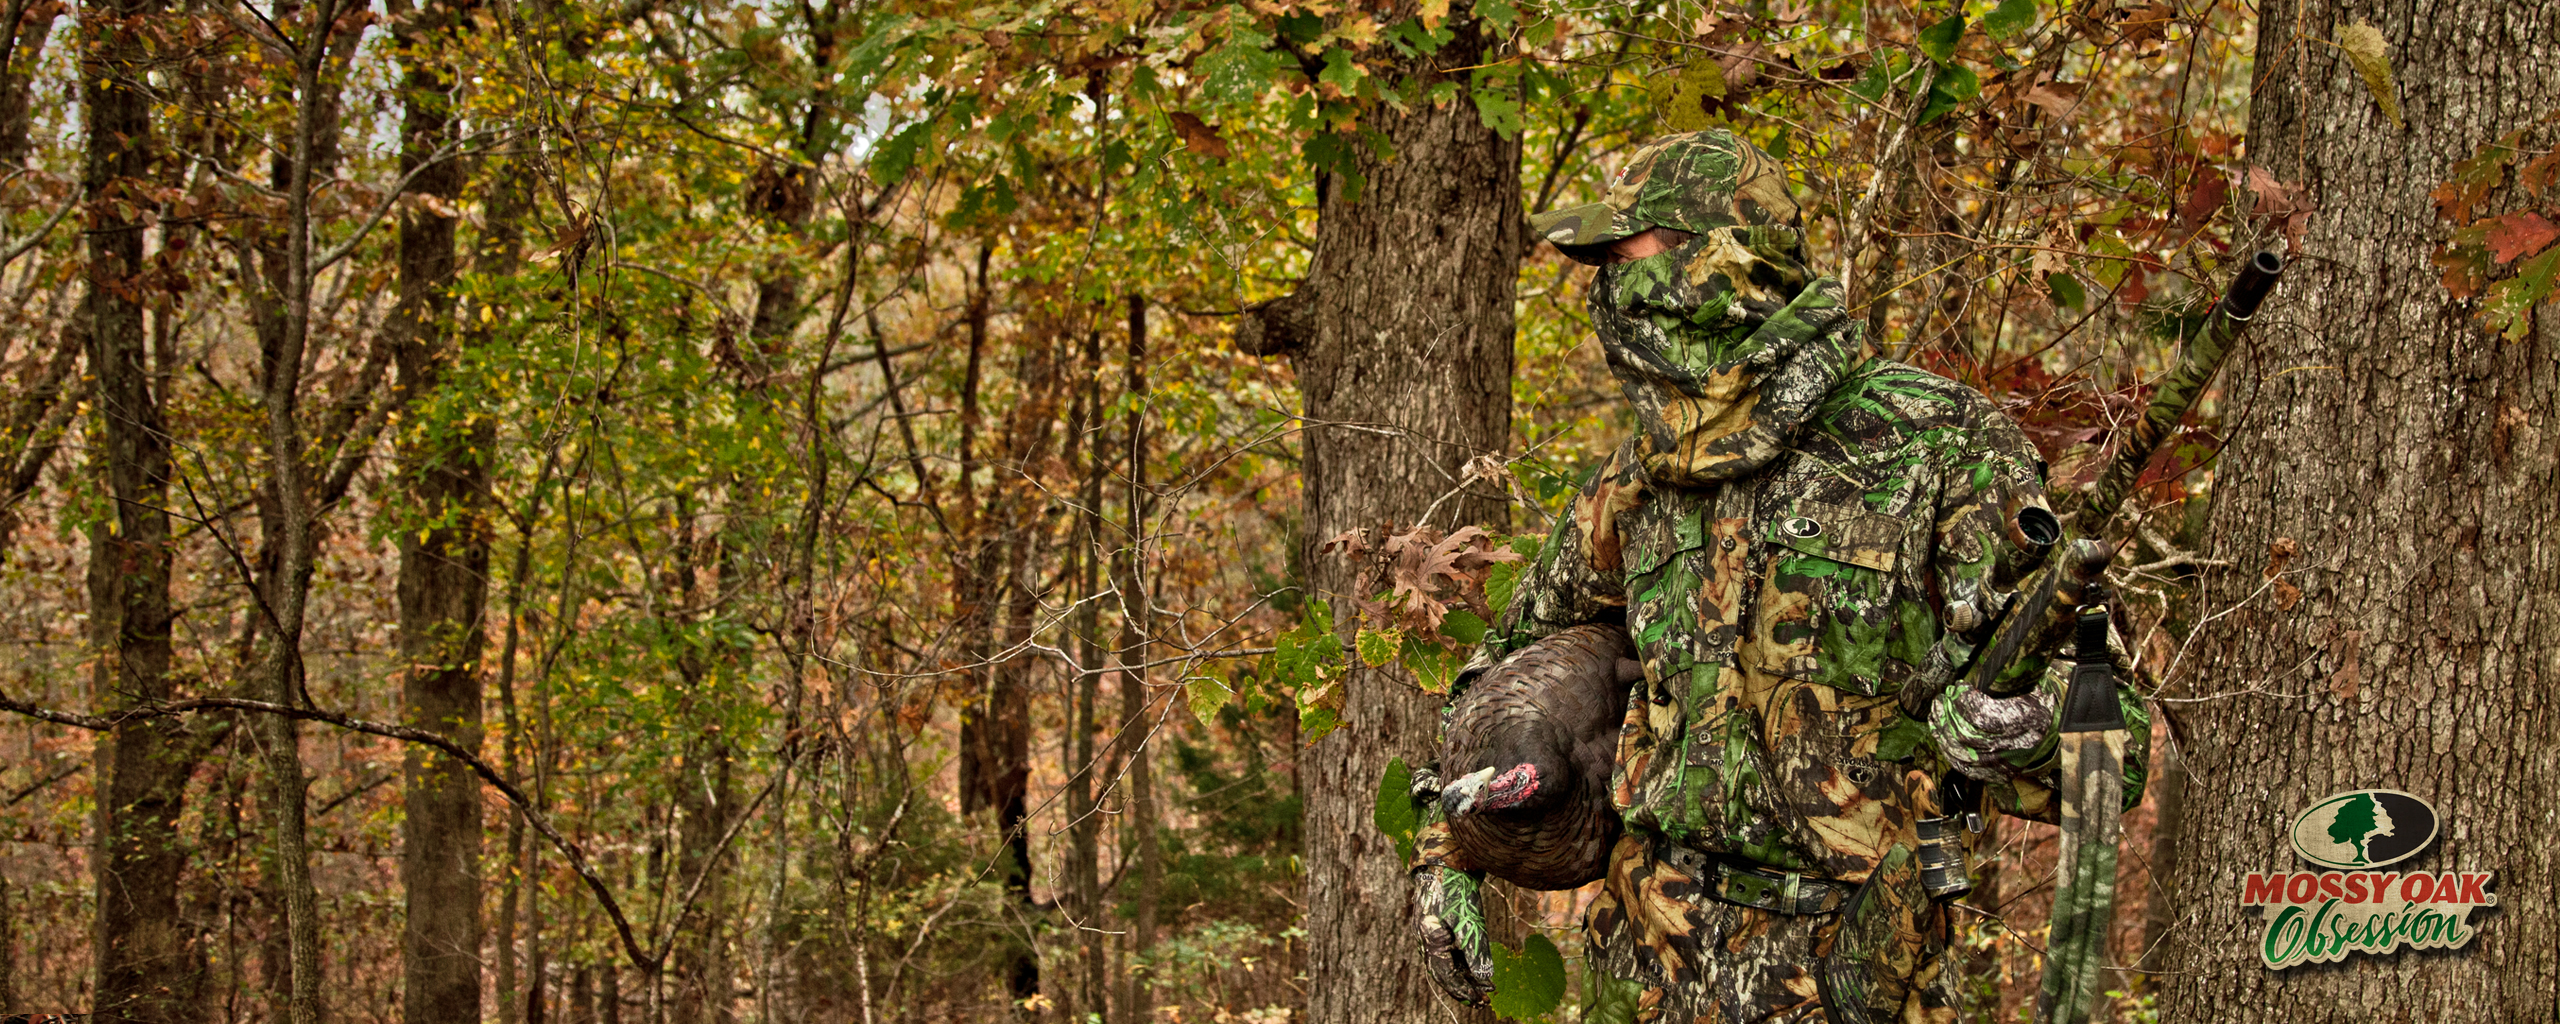 Mossy Oak Wallpaper Mossy oak wallpapers 2560x1024